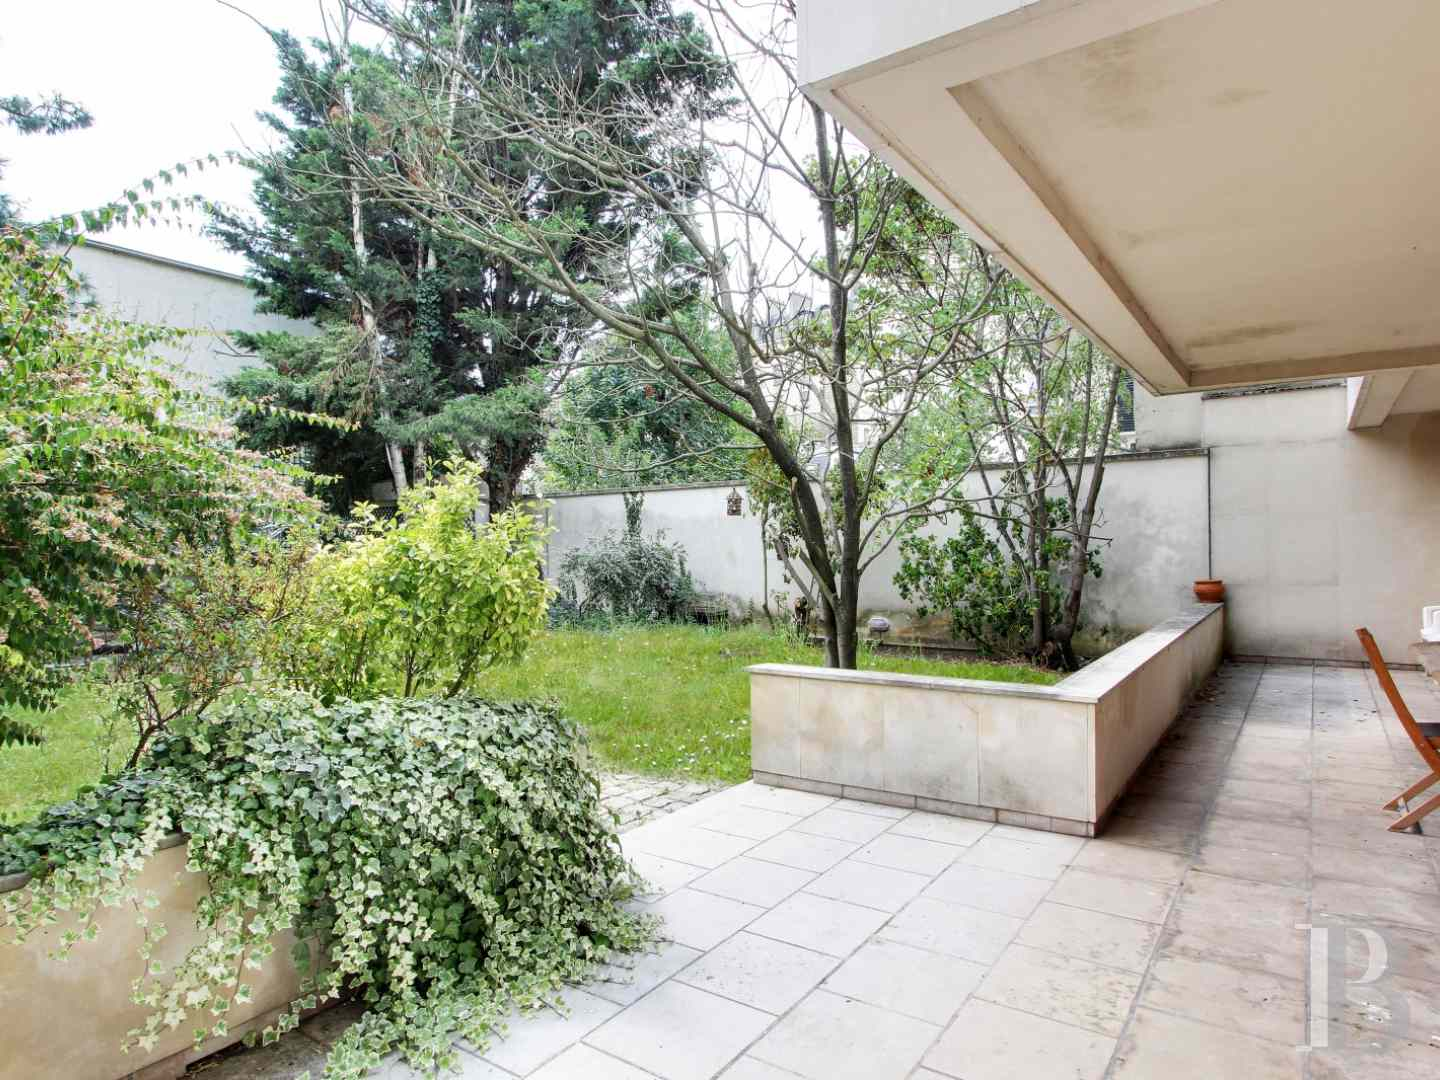 property for sale France paris residences mansion - 15 zoom